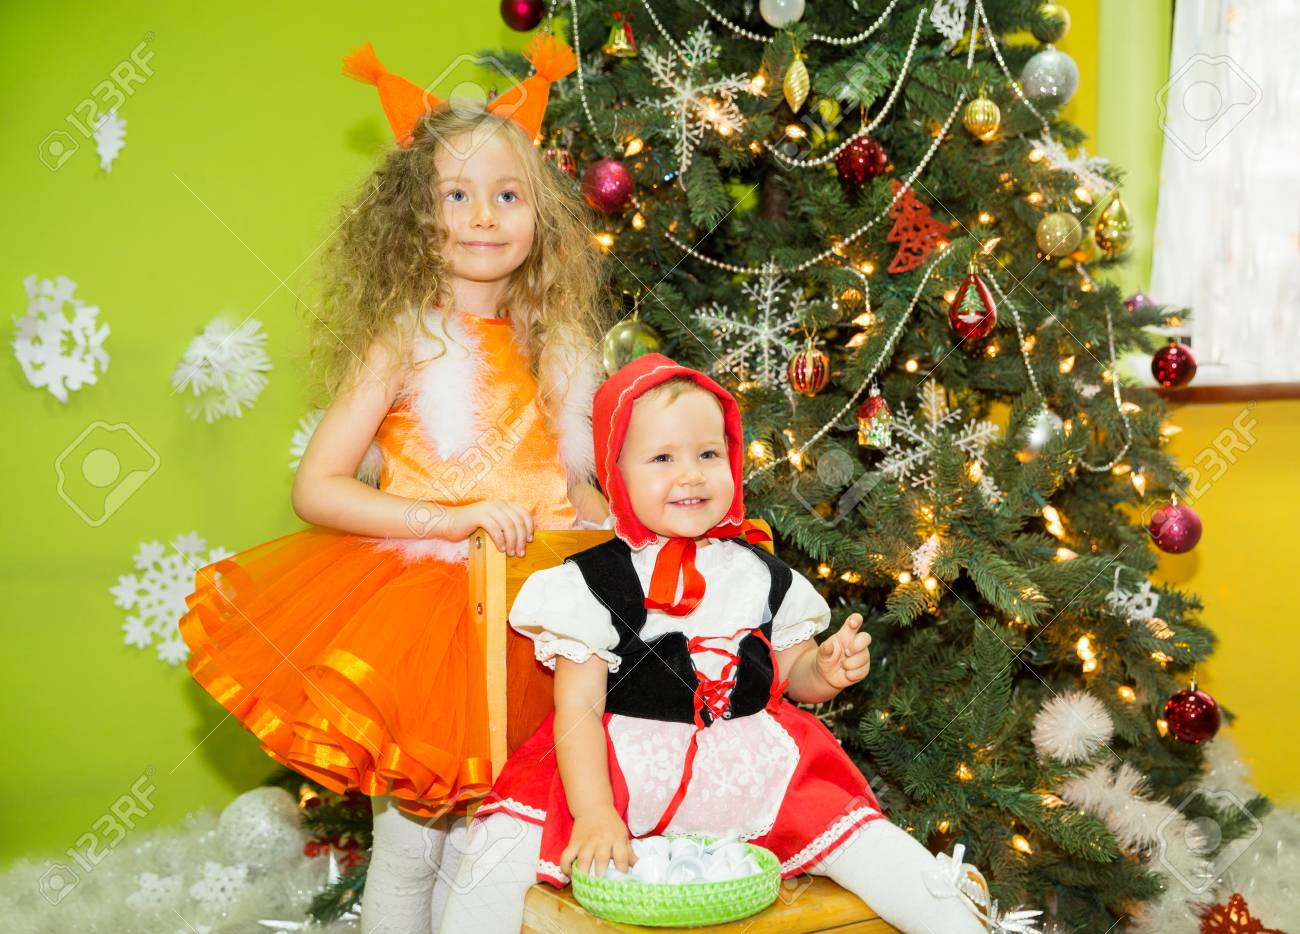 Portrait Of Children Girls In A Suit Squirrels Around A Christmas Stock Photo Picture And Royalty Free Image Image 70847449